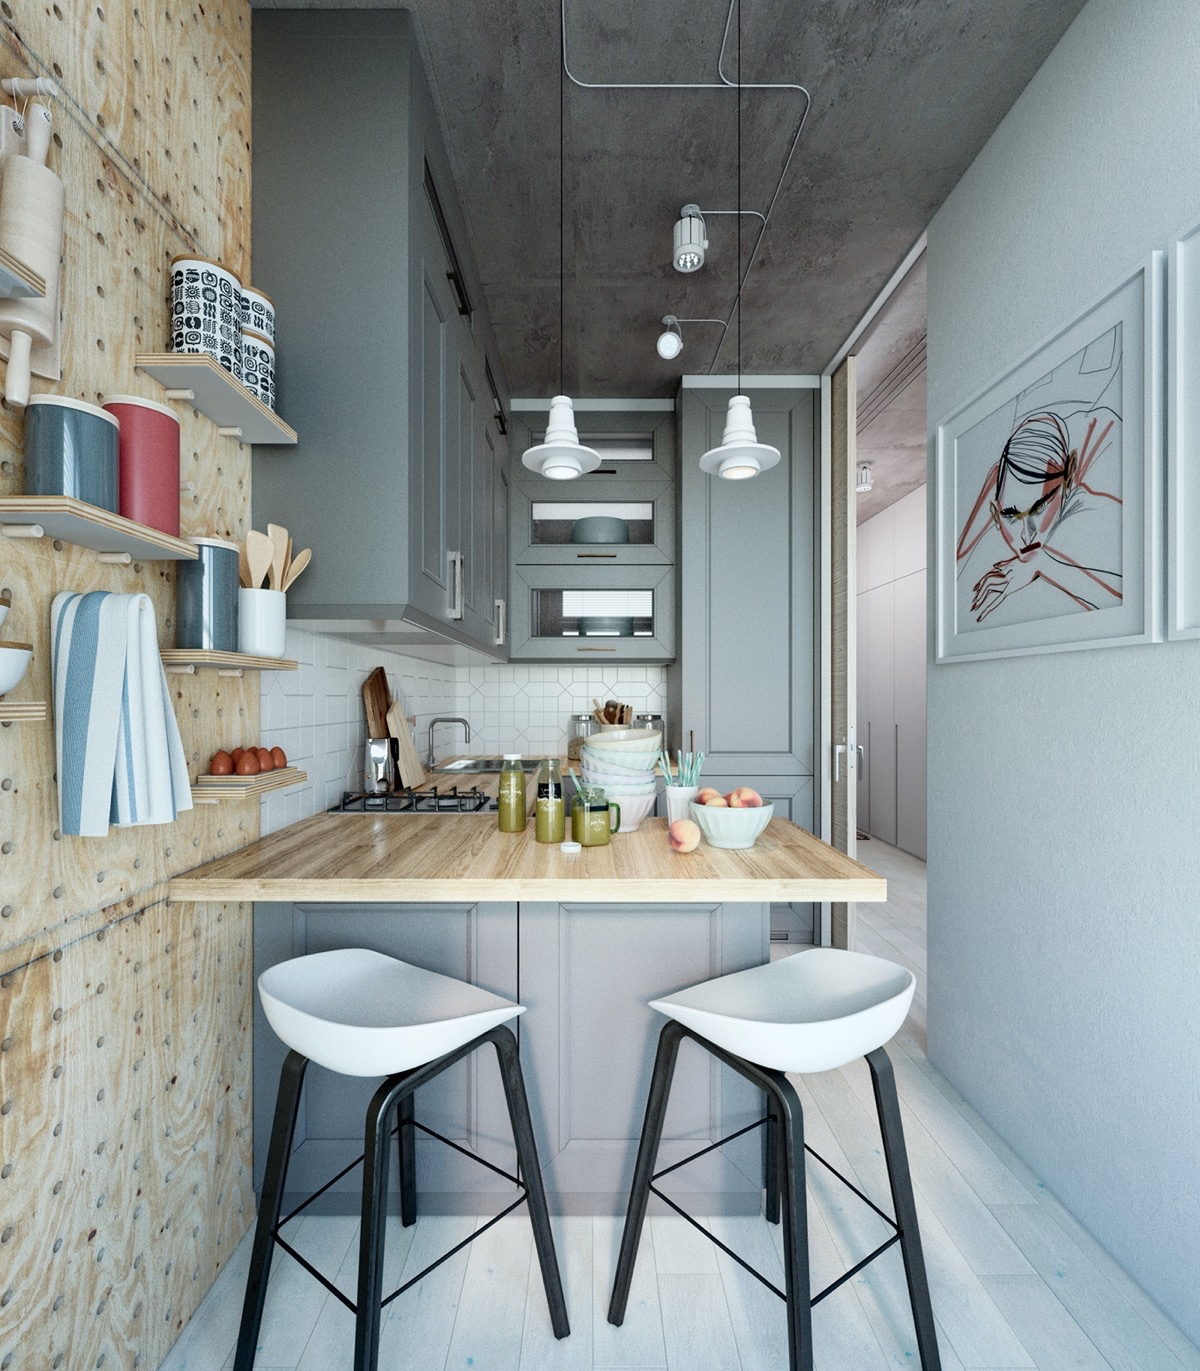 Small Apartment Design: Small Apartment Design With Scandinavian Style That Looks